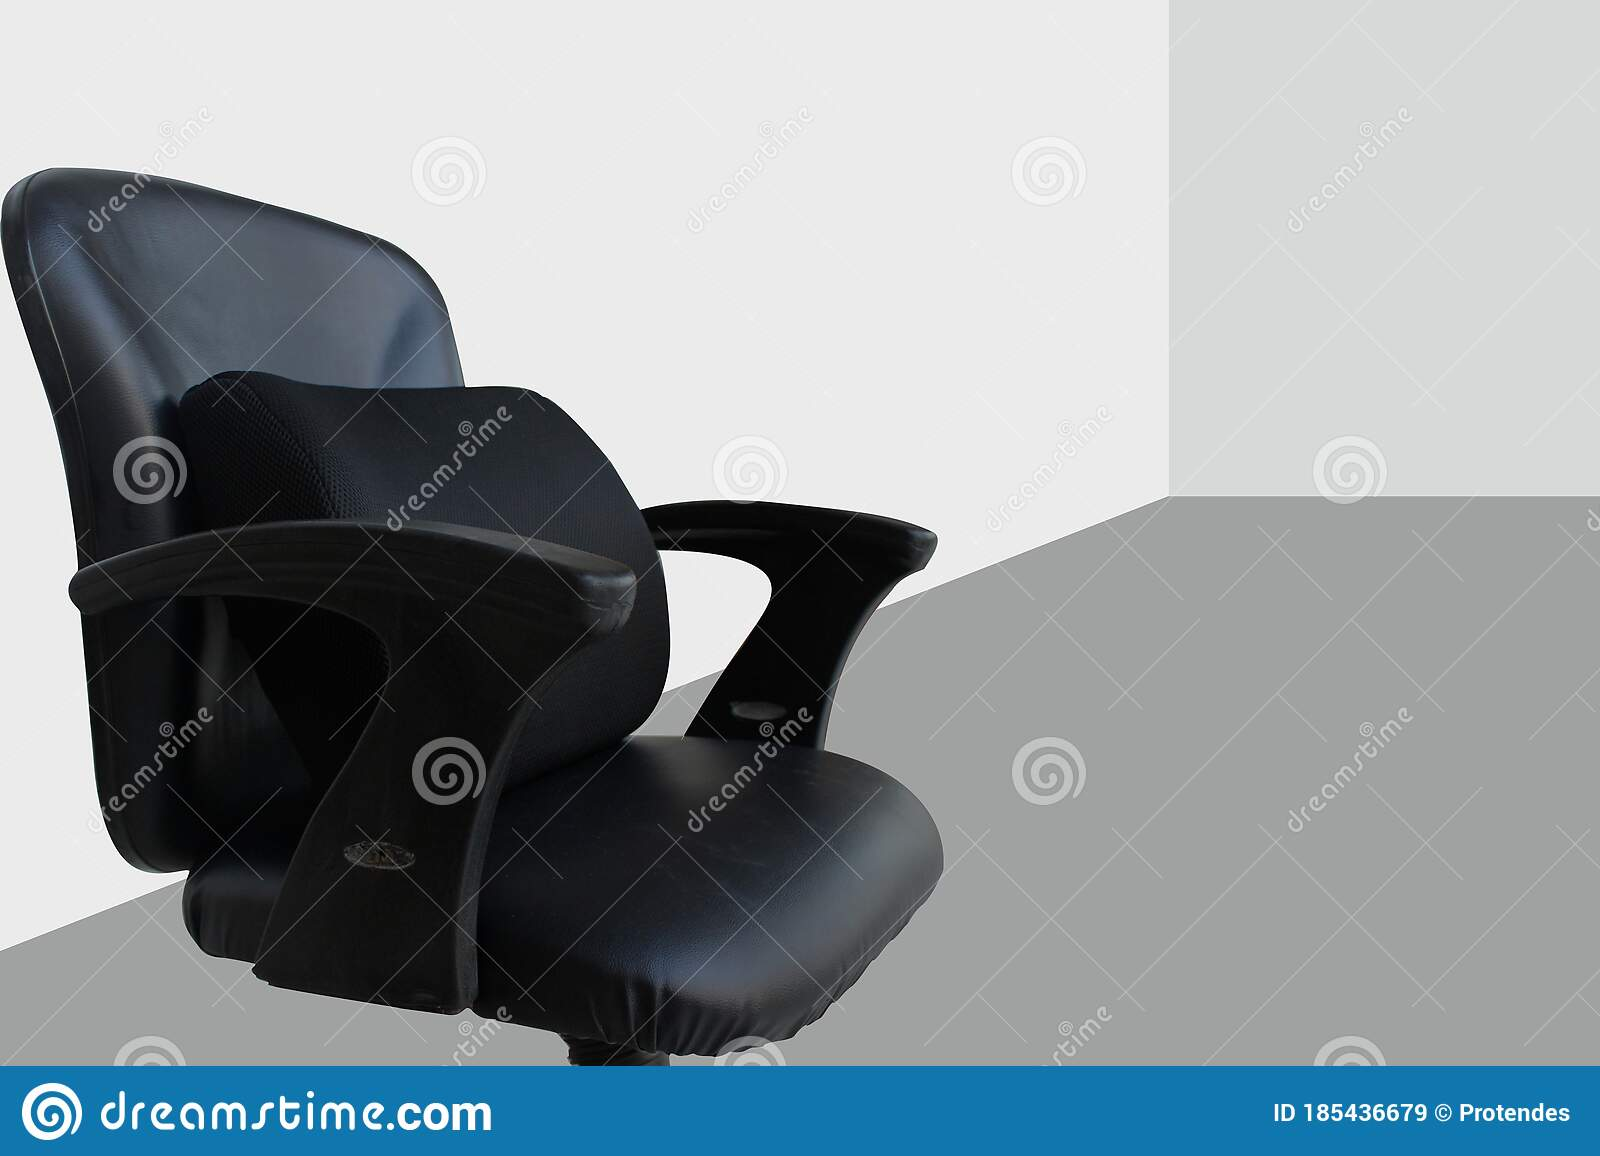 Picture of: Memory Foam Lumbar Support Cushion In Black Office Chair Stock Image Image Of Coccyxcushion Home 185436679